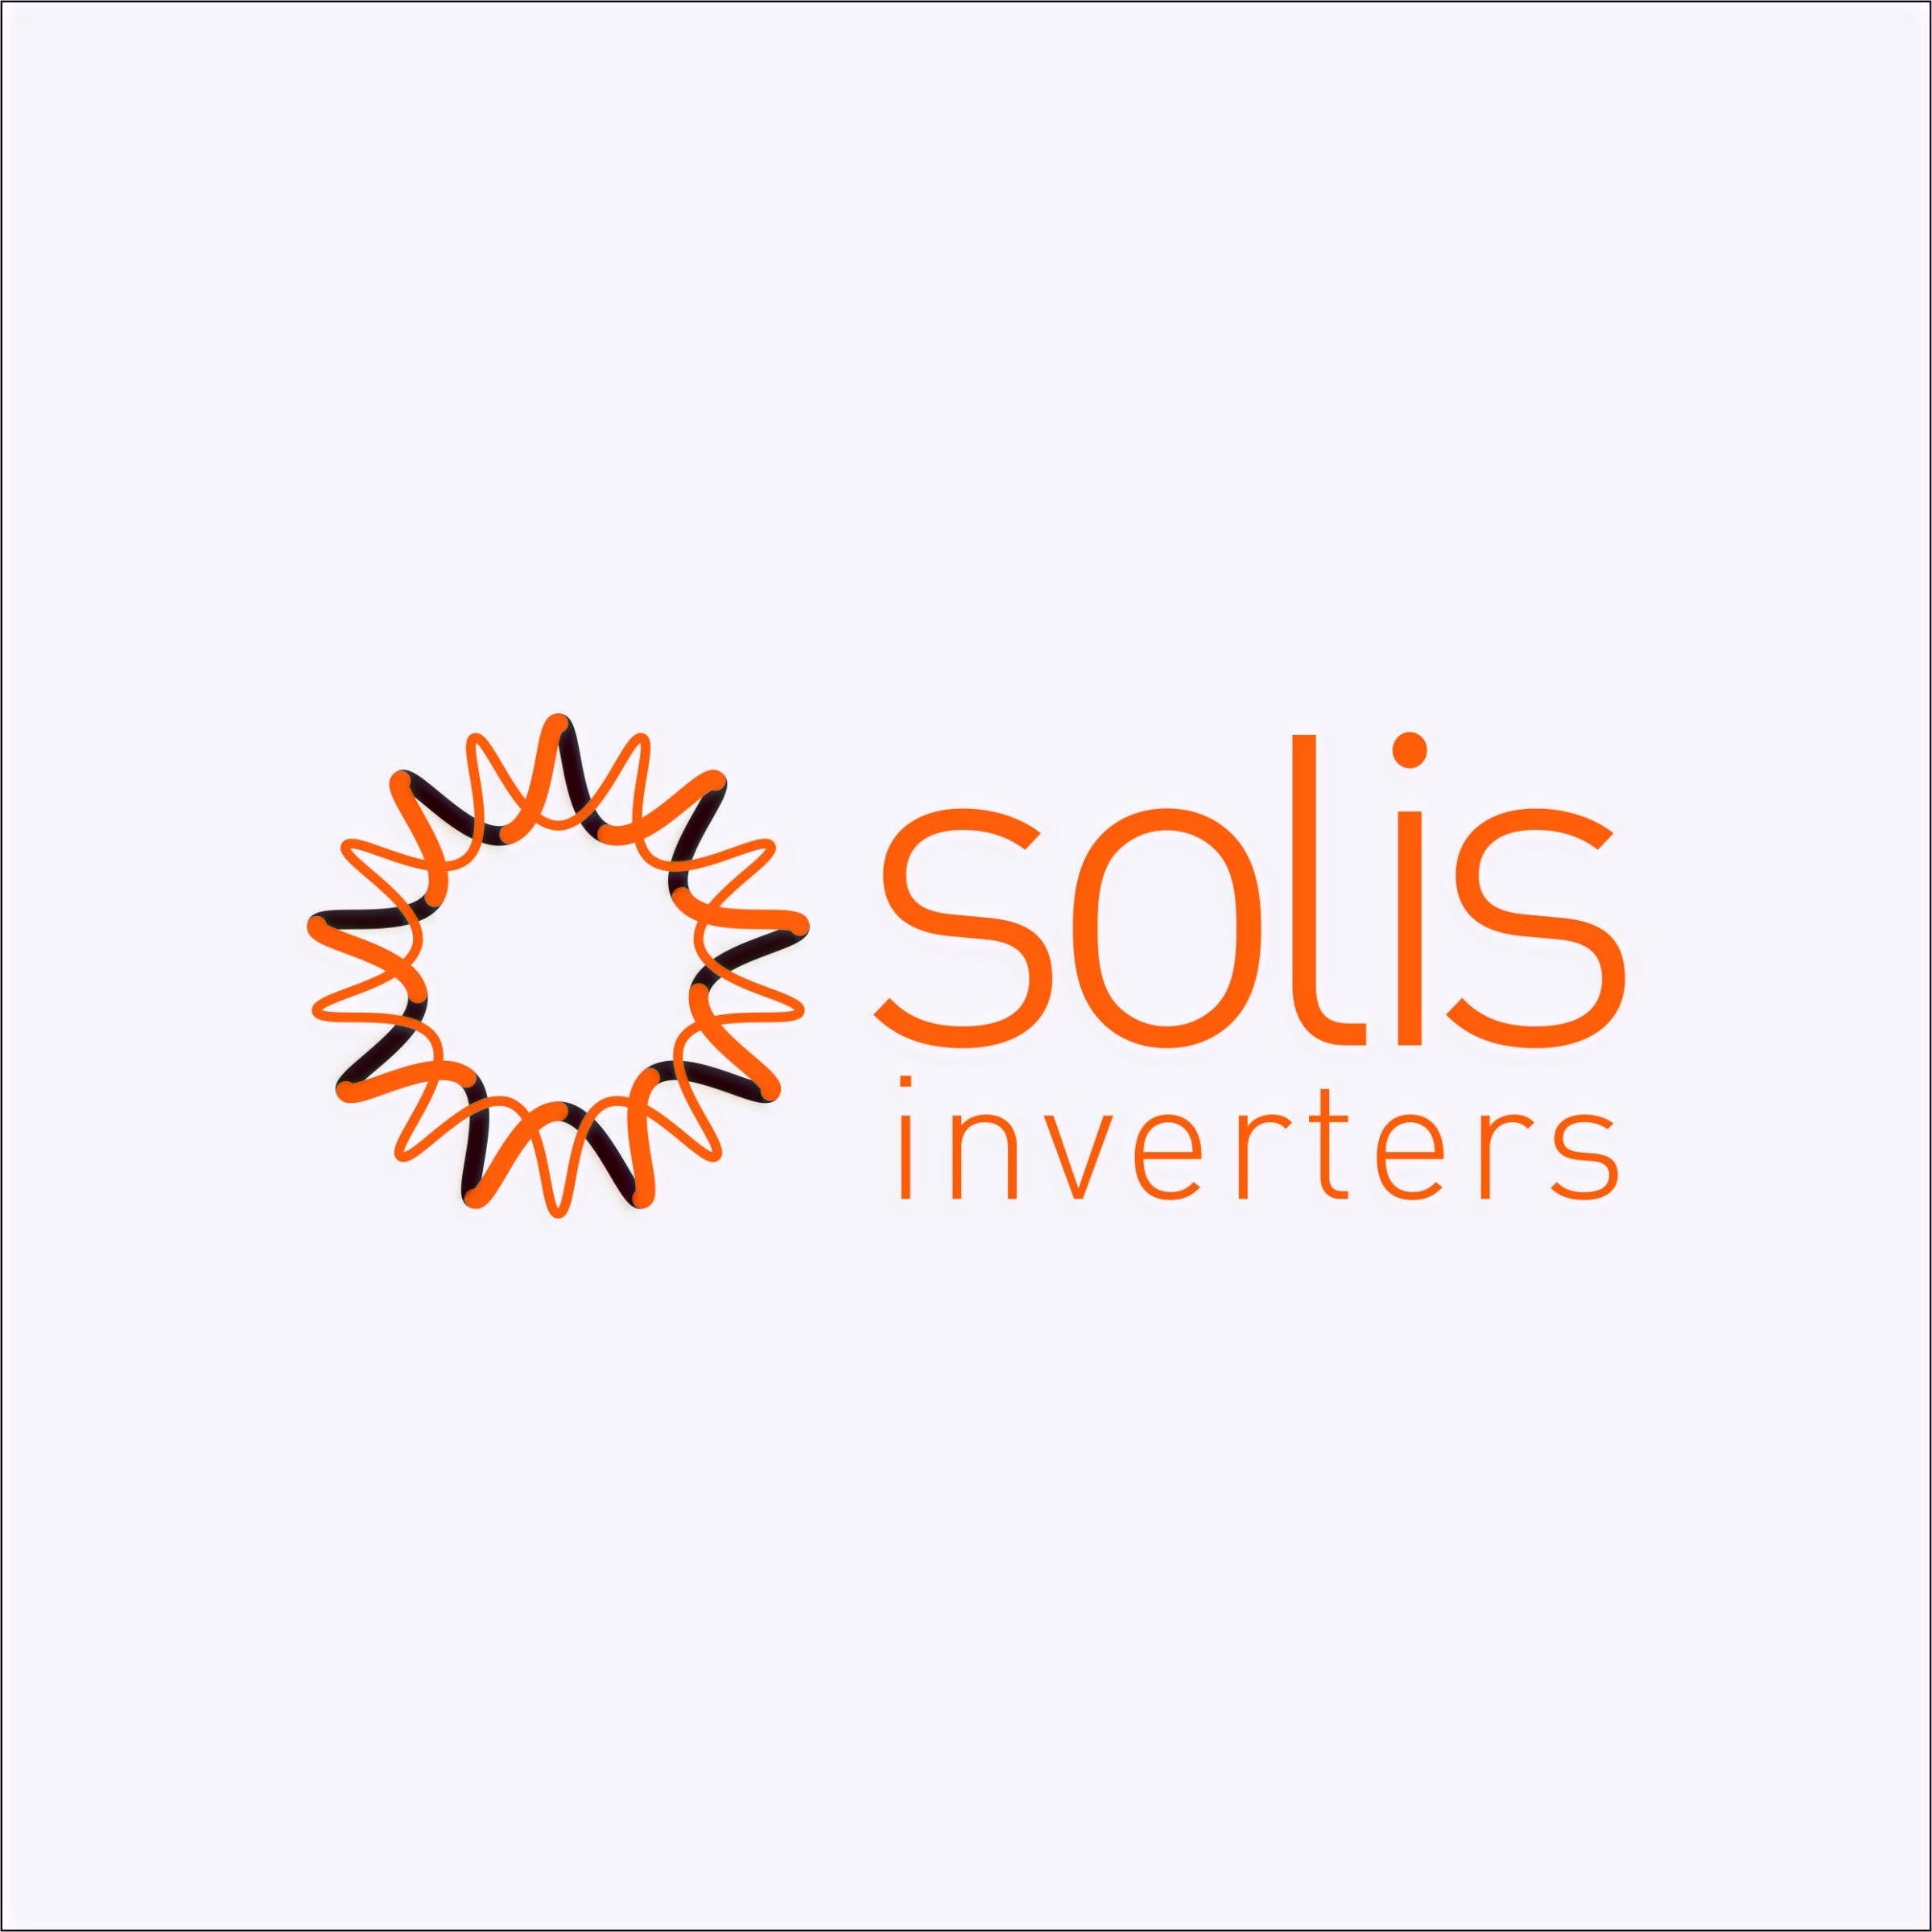 solis-inverters-logo_edited